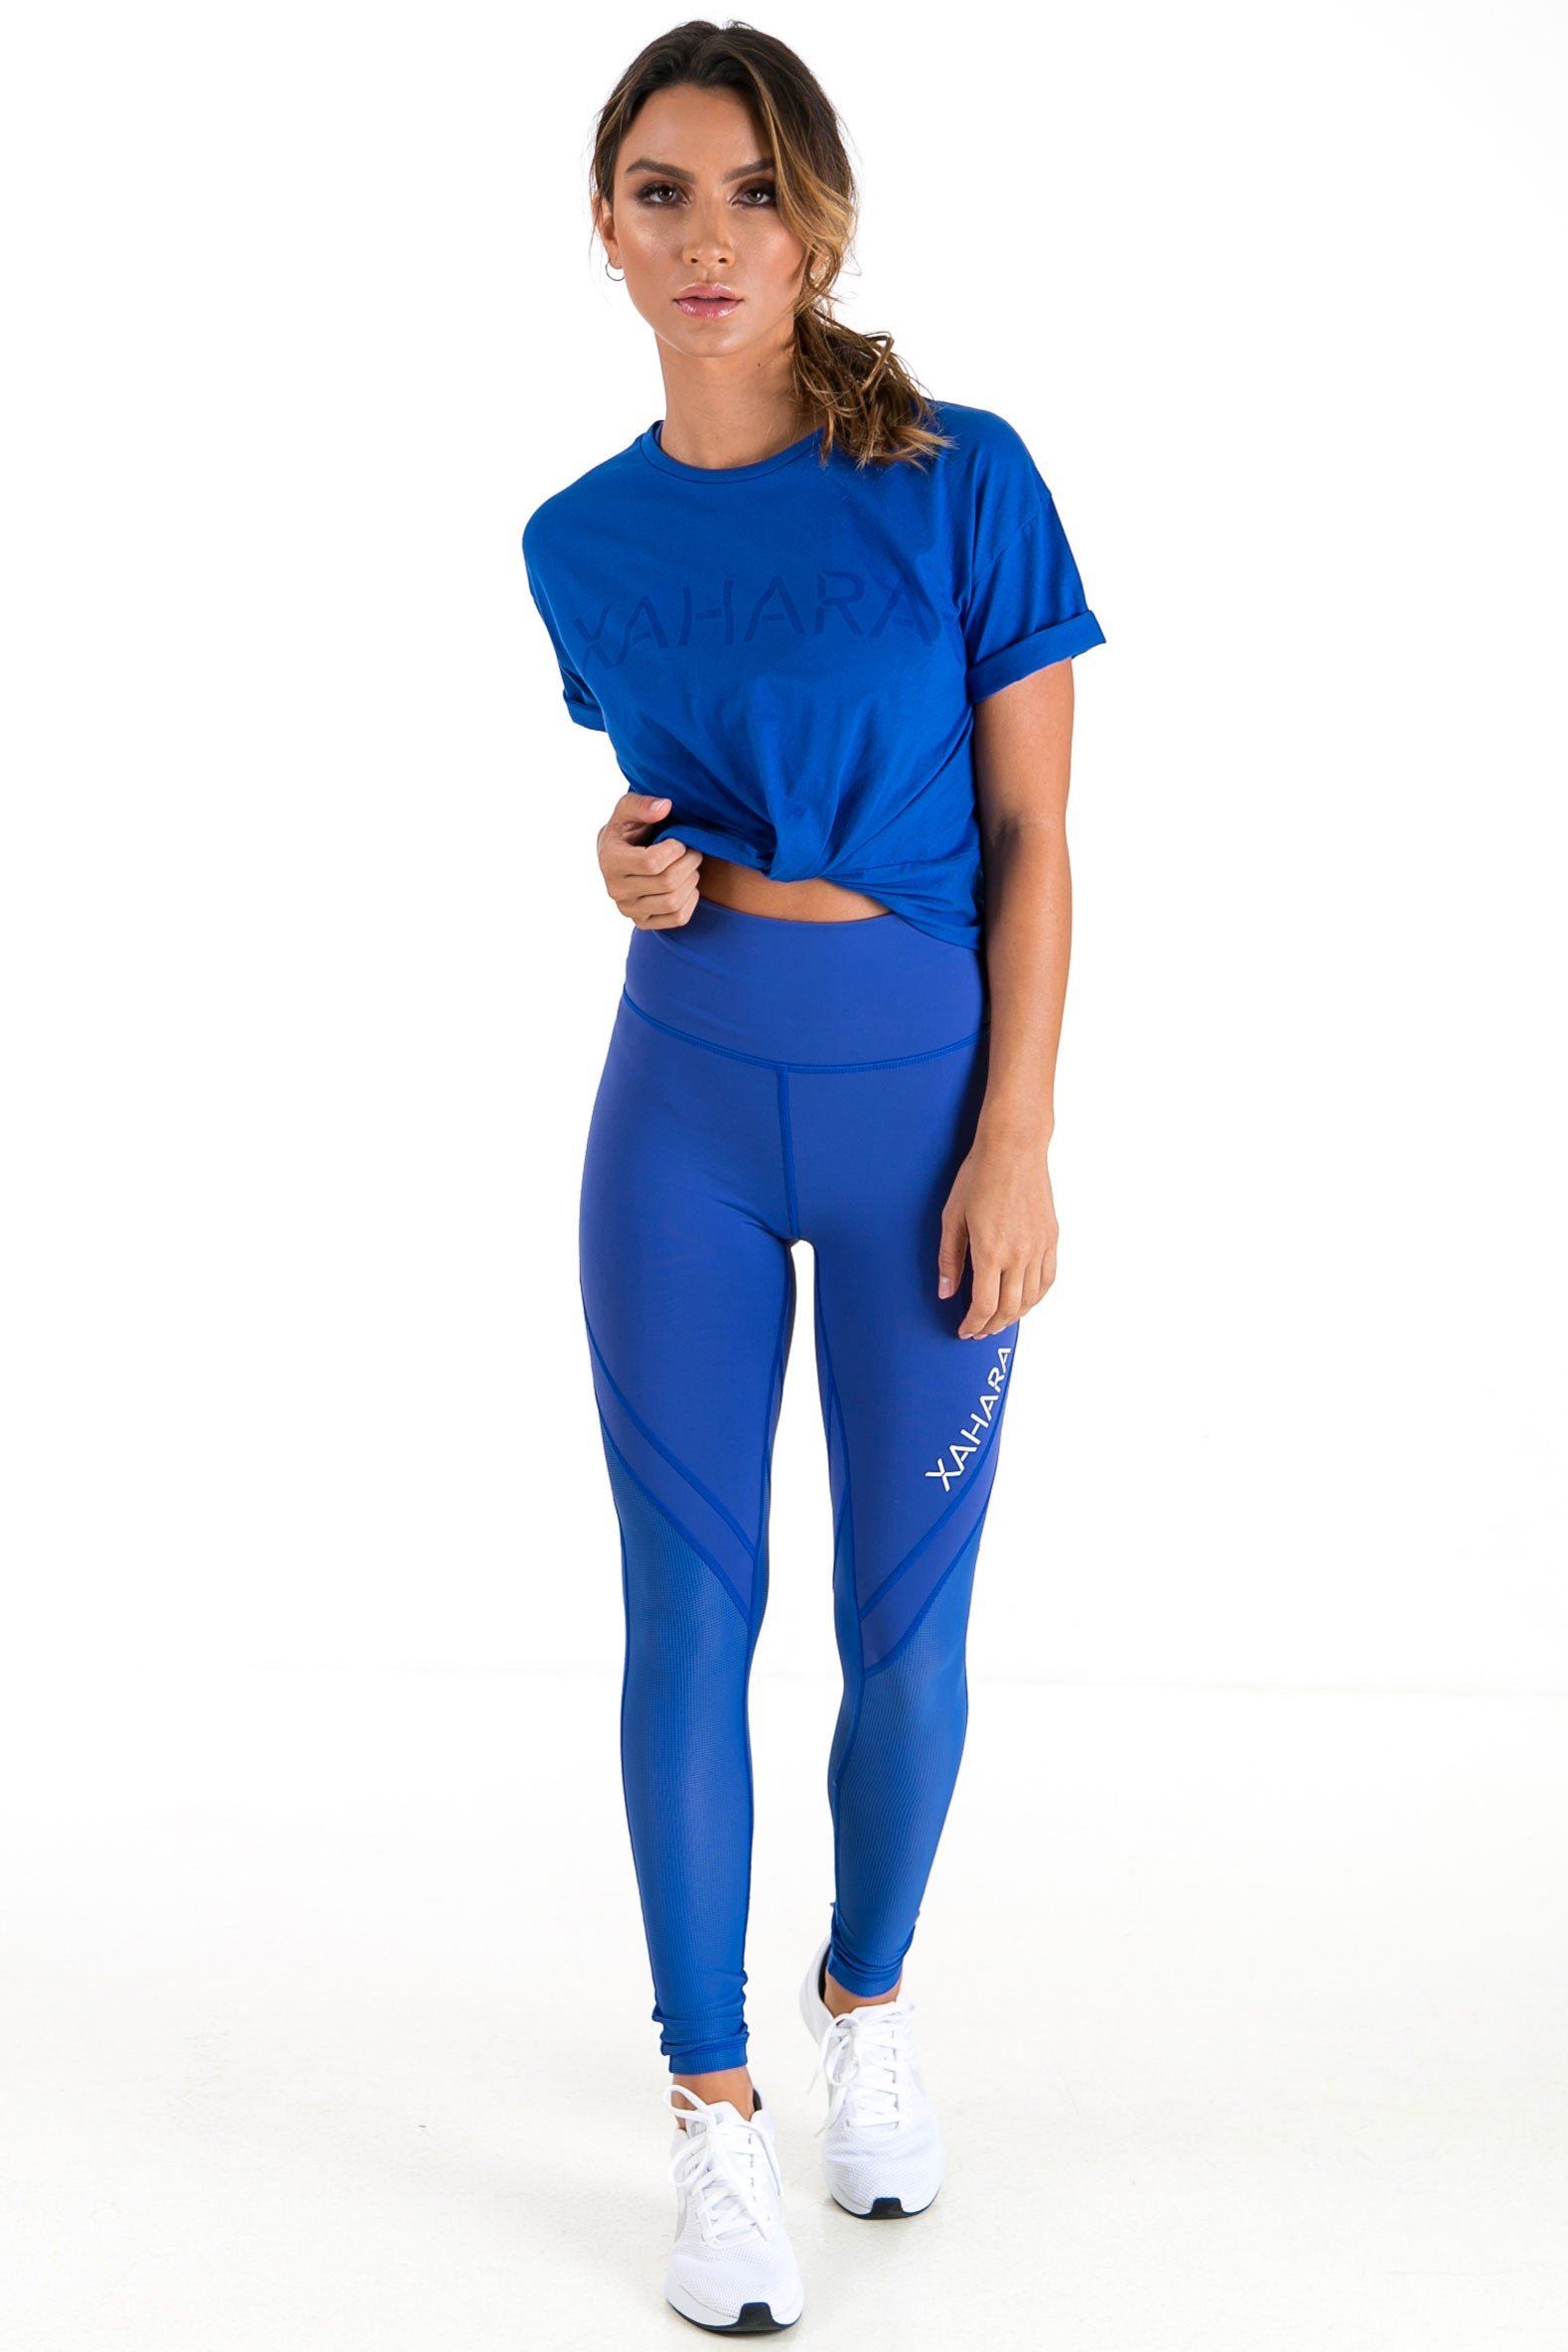 Bootylicious Leggings - Olympic Blue - Xahara Activewear